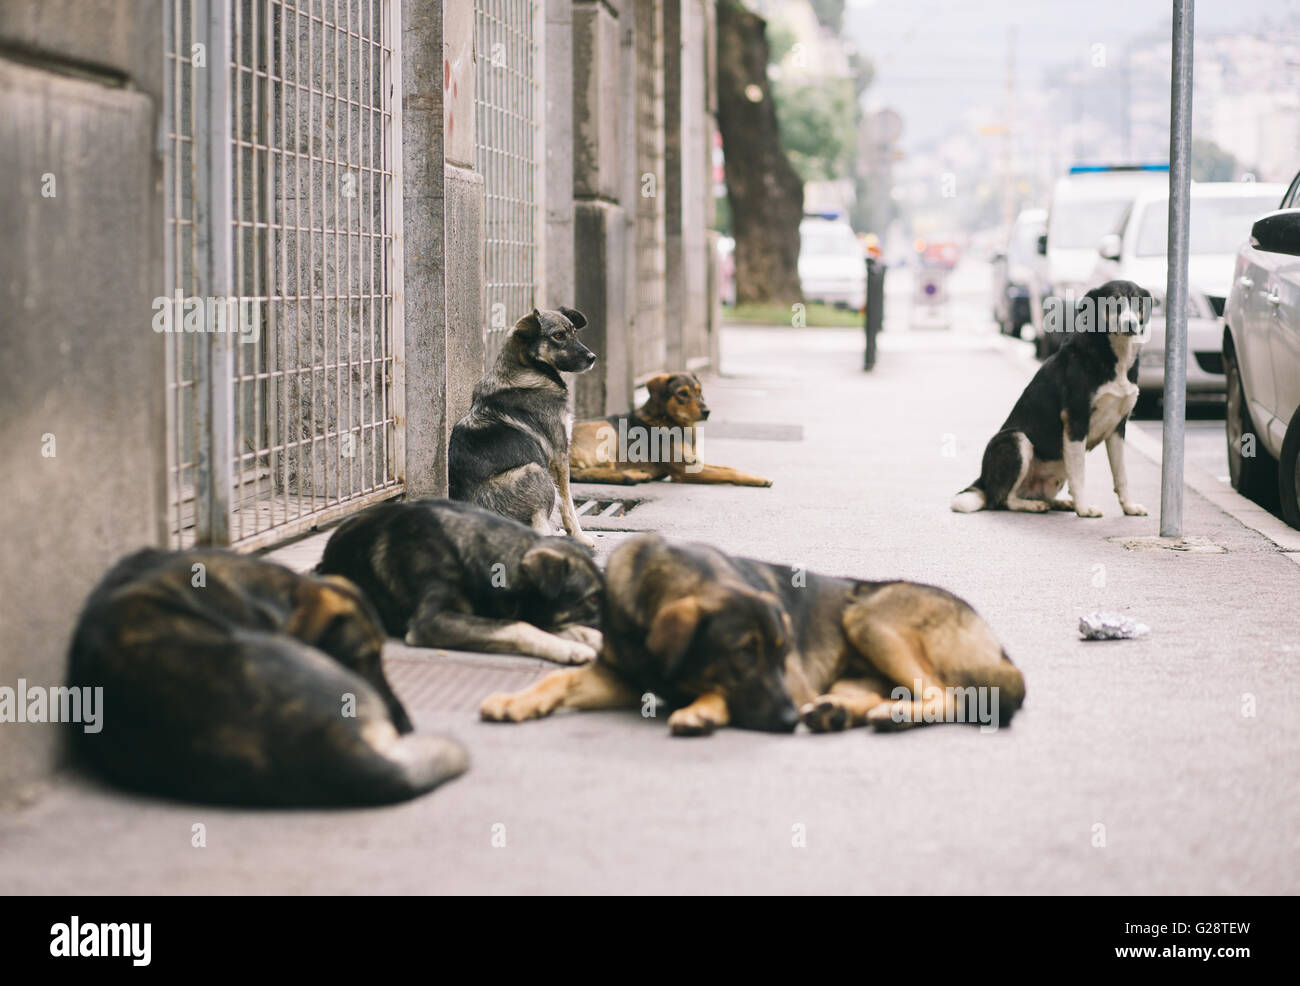 Dogs on the street - Stock Image